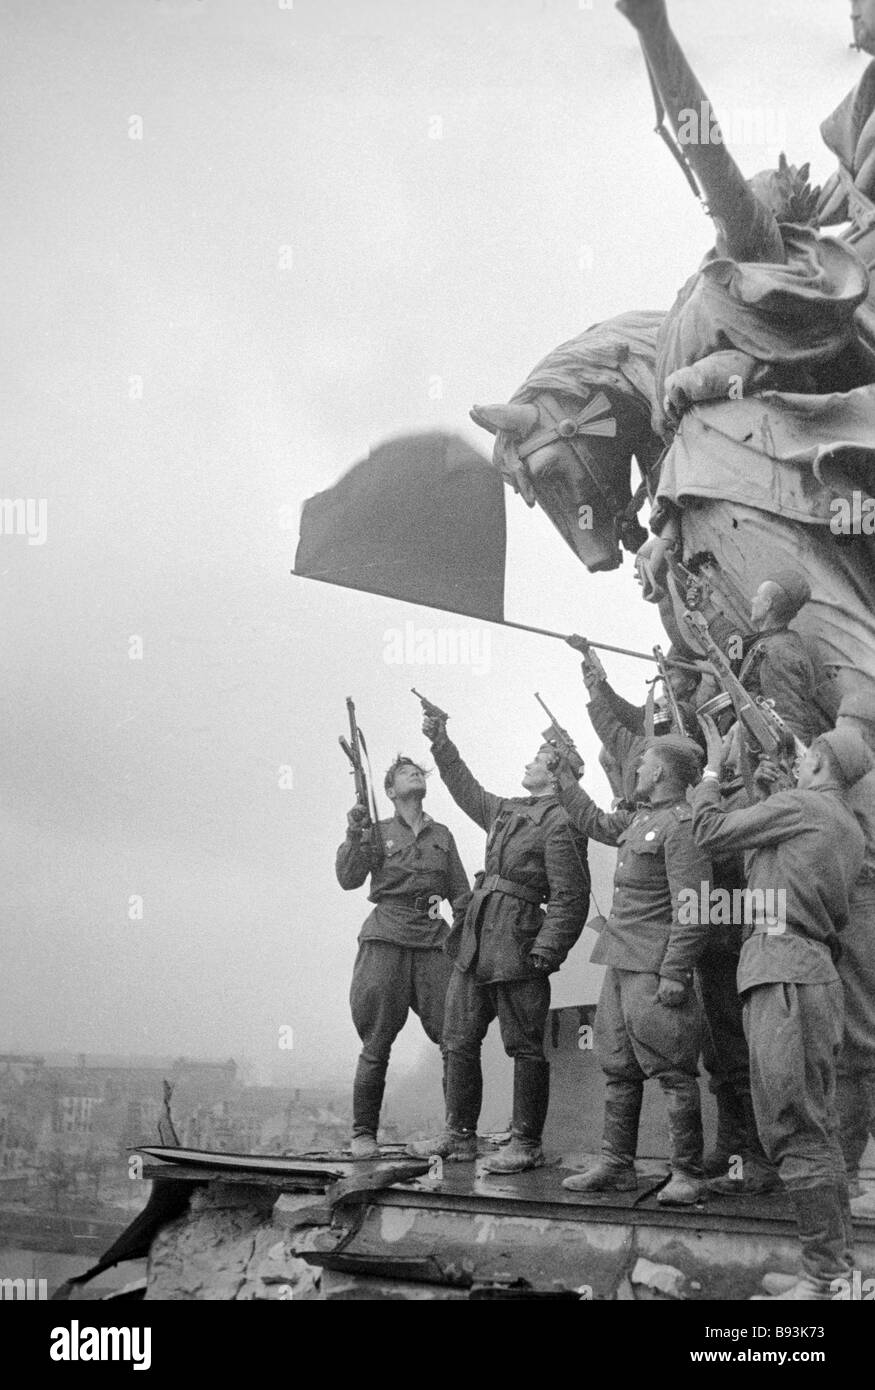 Soviet soldiers saluting on the pedestal of a monument - Stock Image